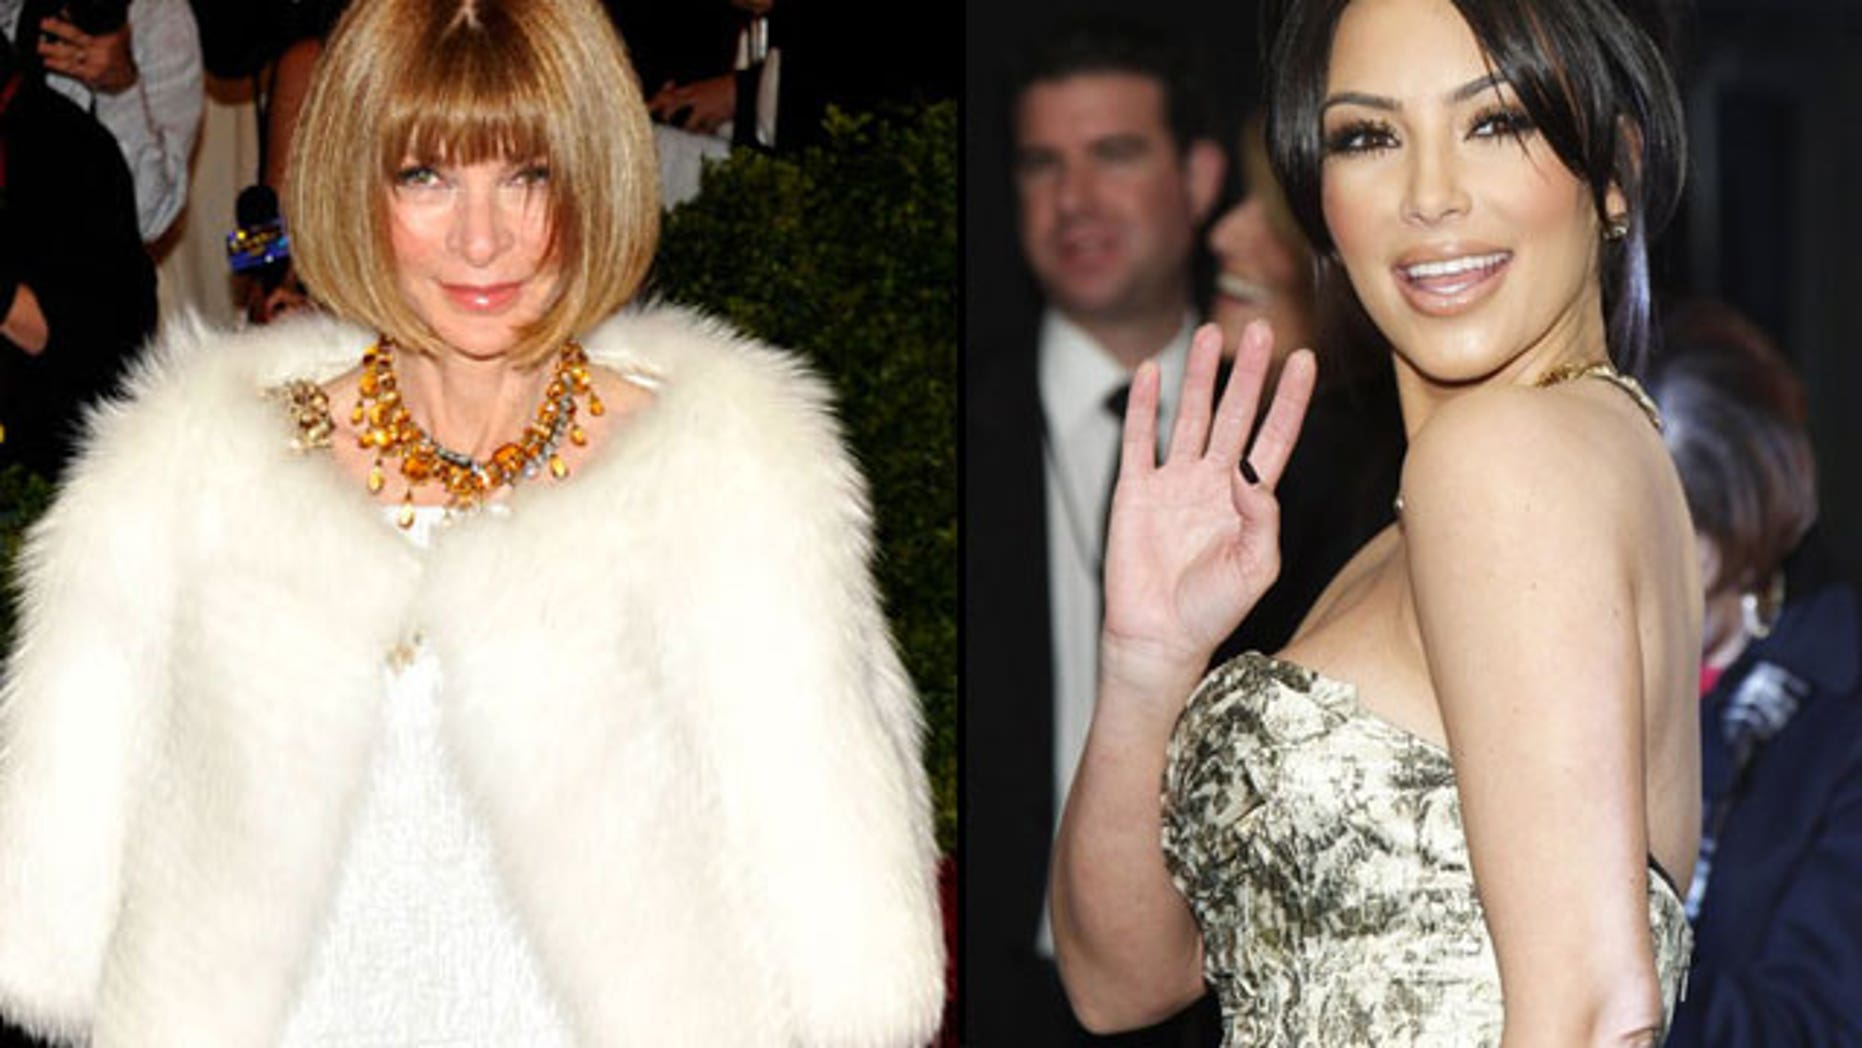 Anna Wintour is reportedly not a fan of Kim Kardashian.